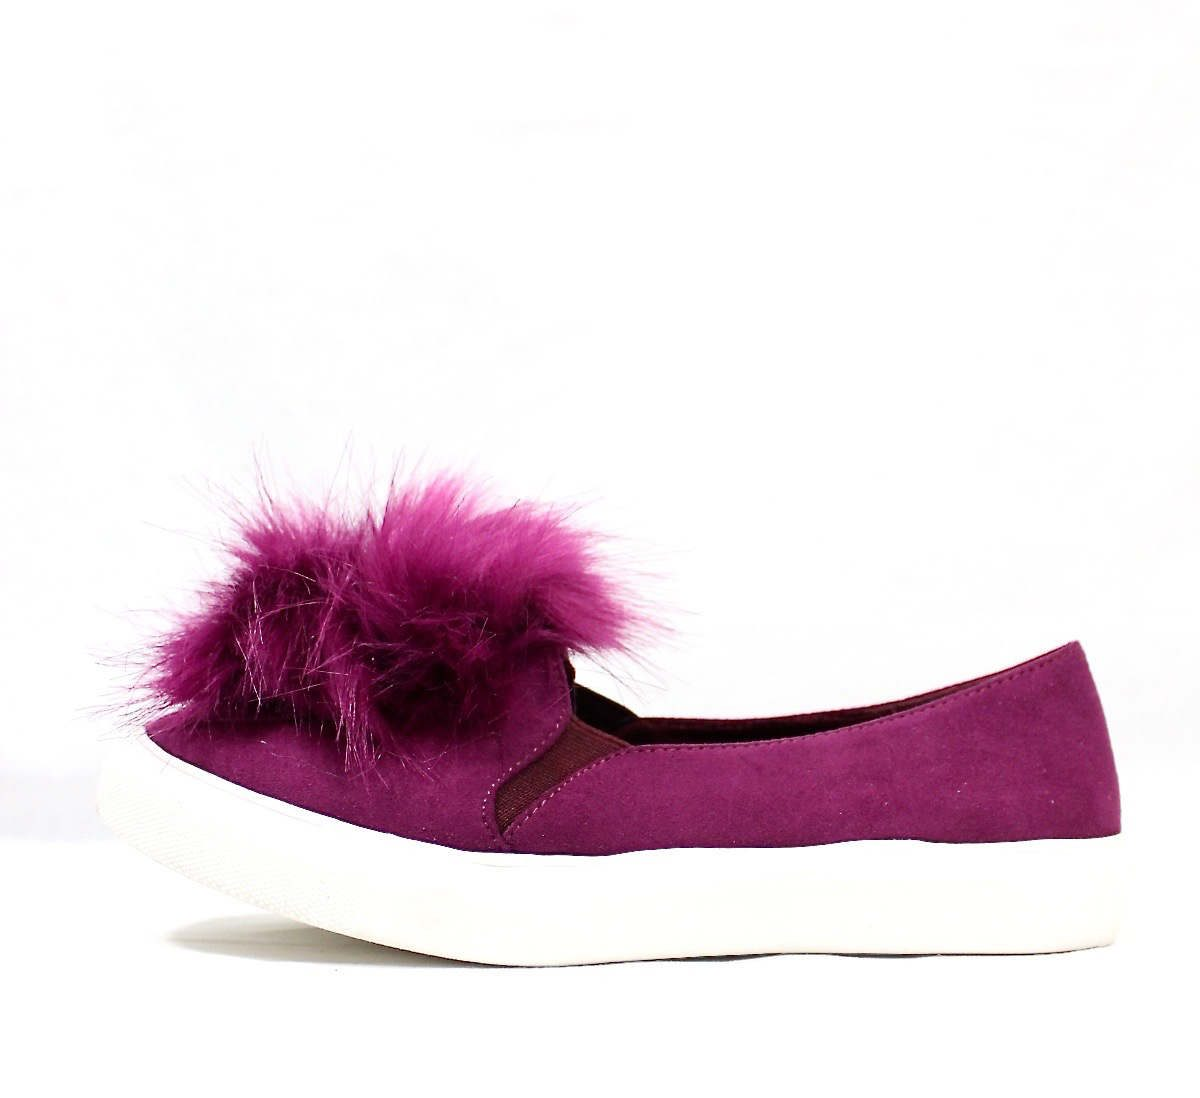 Liliana Bailey-1 Purple Flat Slip On Faux Fur Ball Pom Pom Round Toe Sneakers-4366